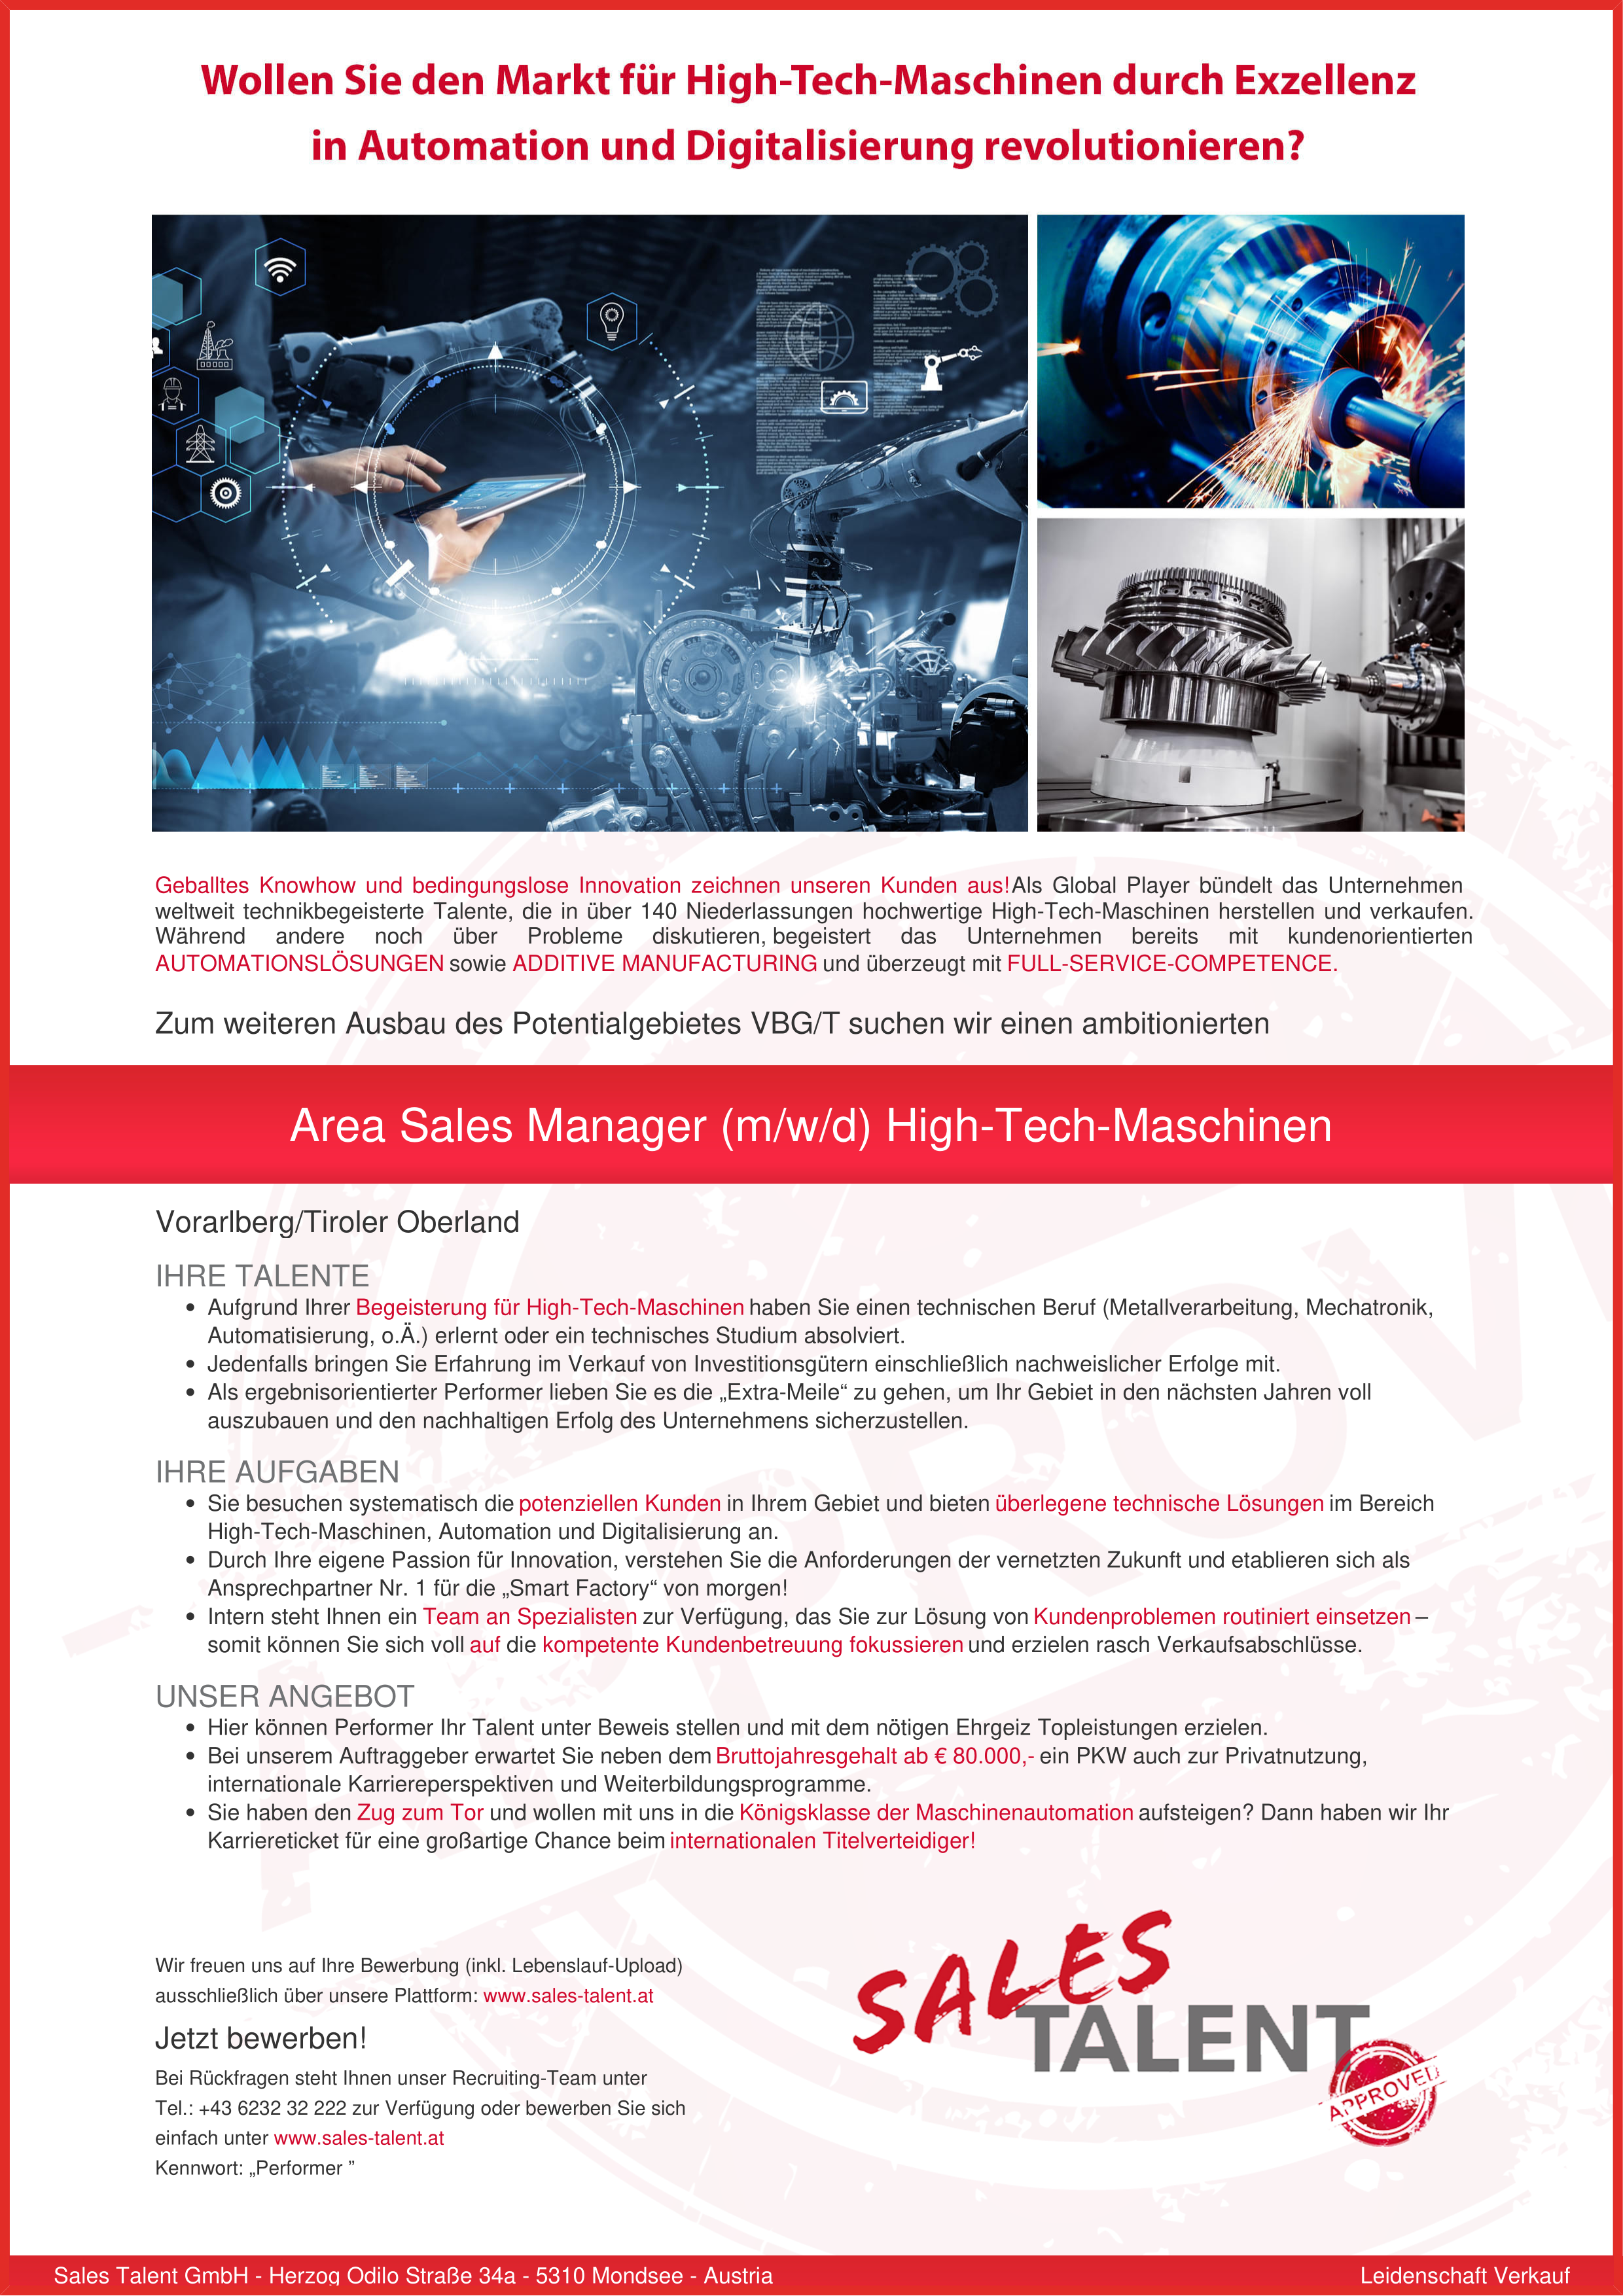 Area Sales Manager (m/w/d) High-Tech-Maschinen